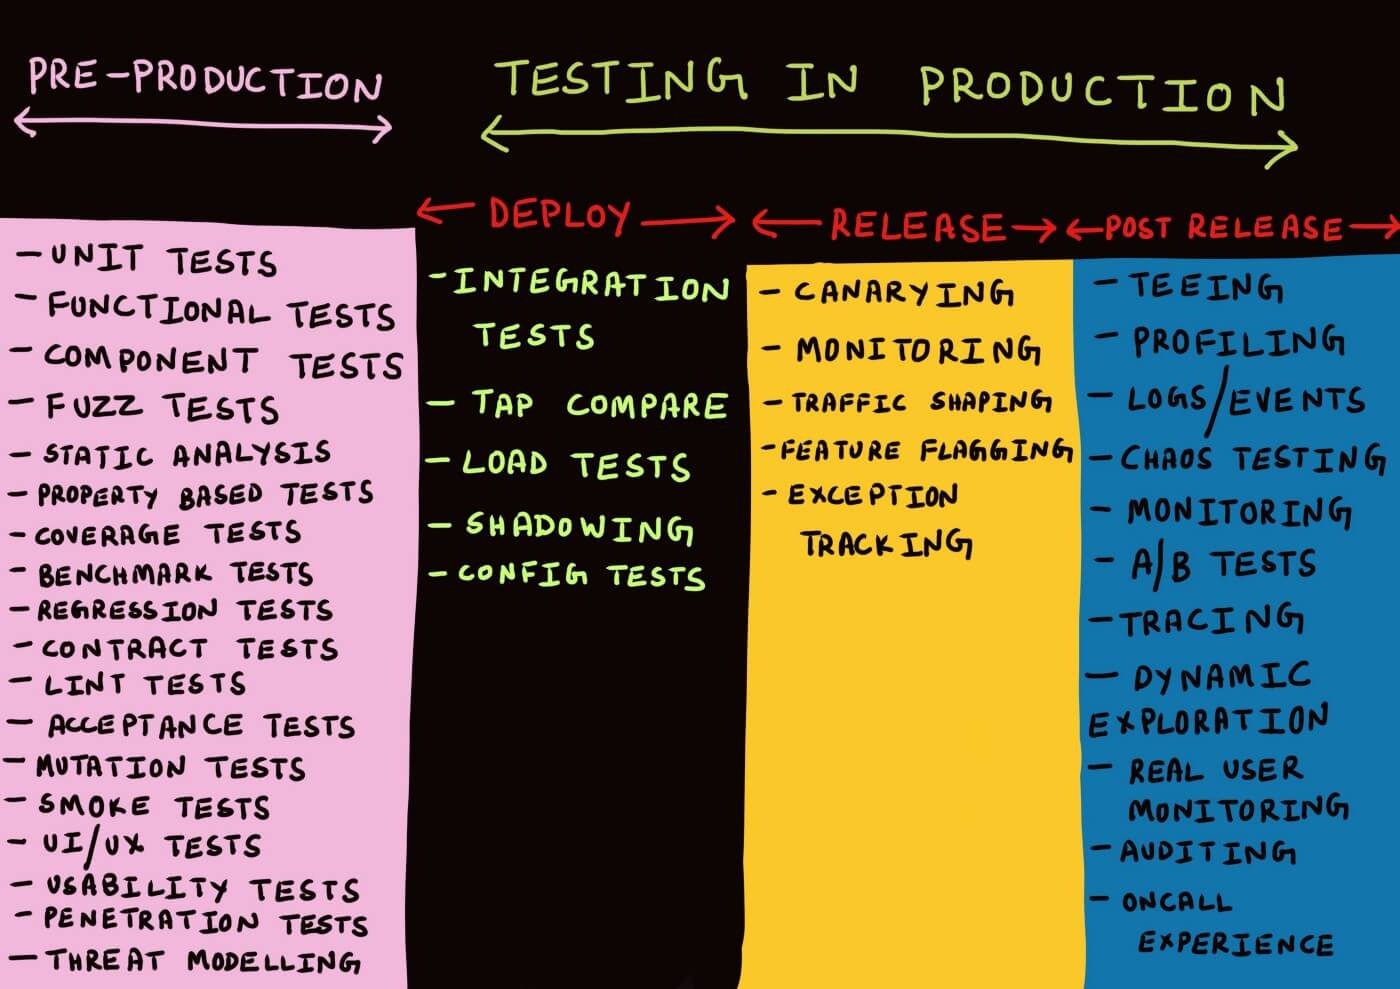 Cindy Sridharan' types of tests